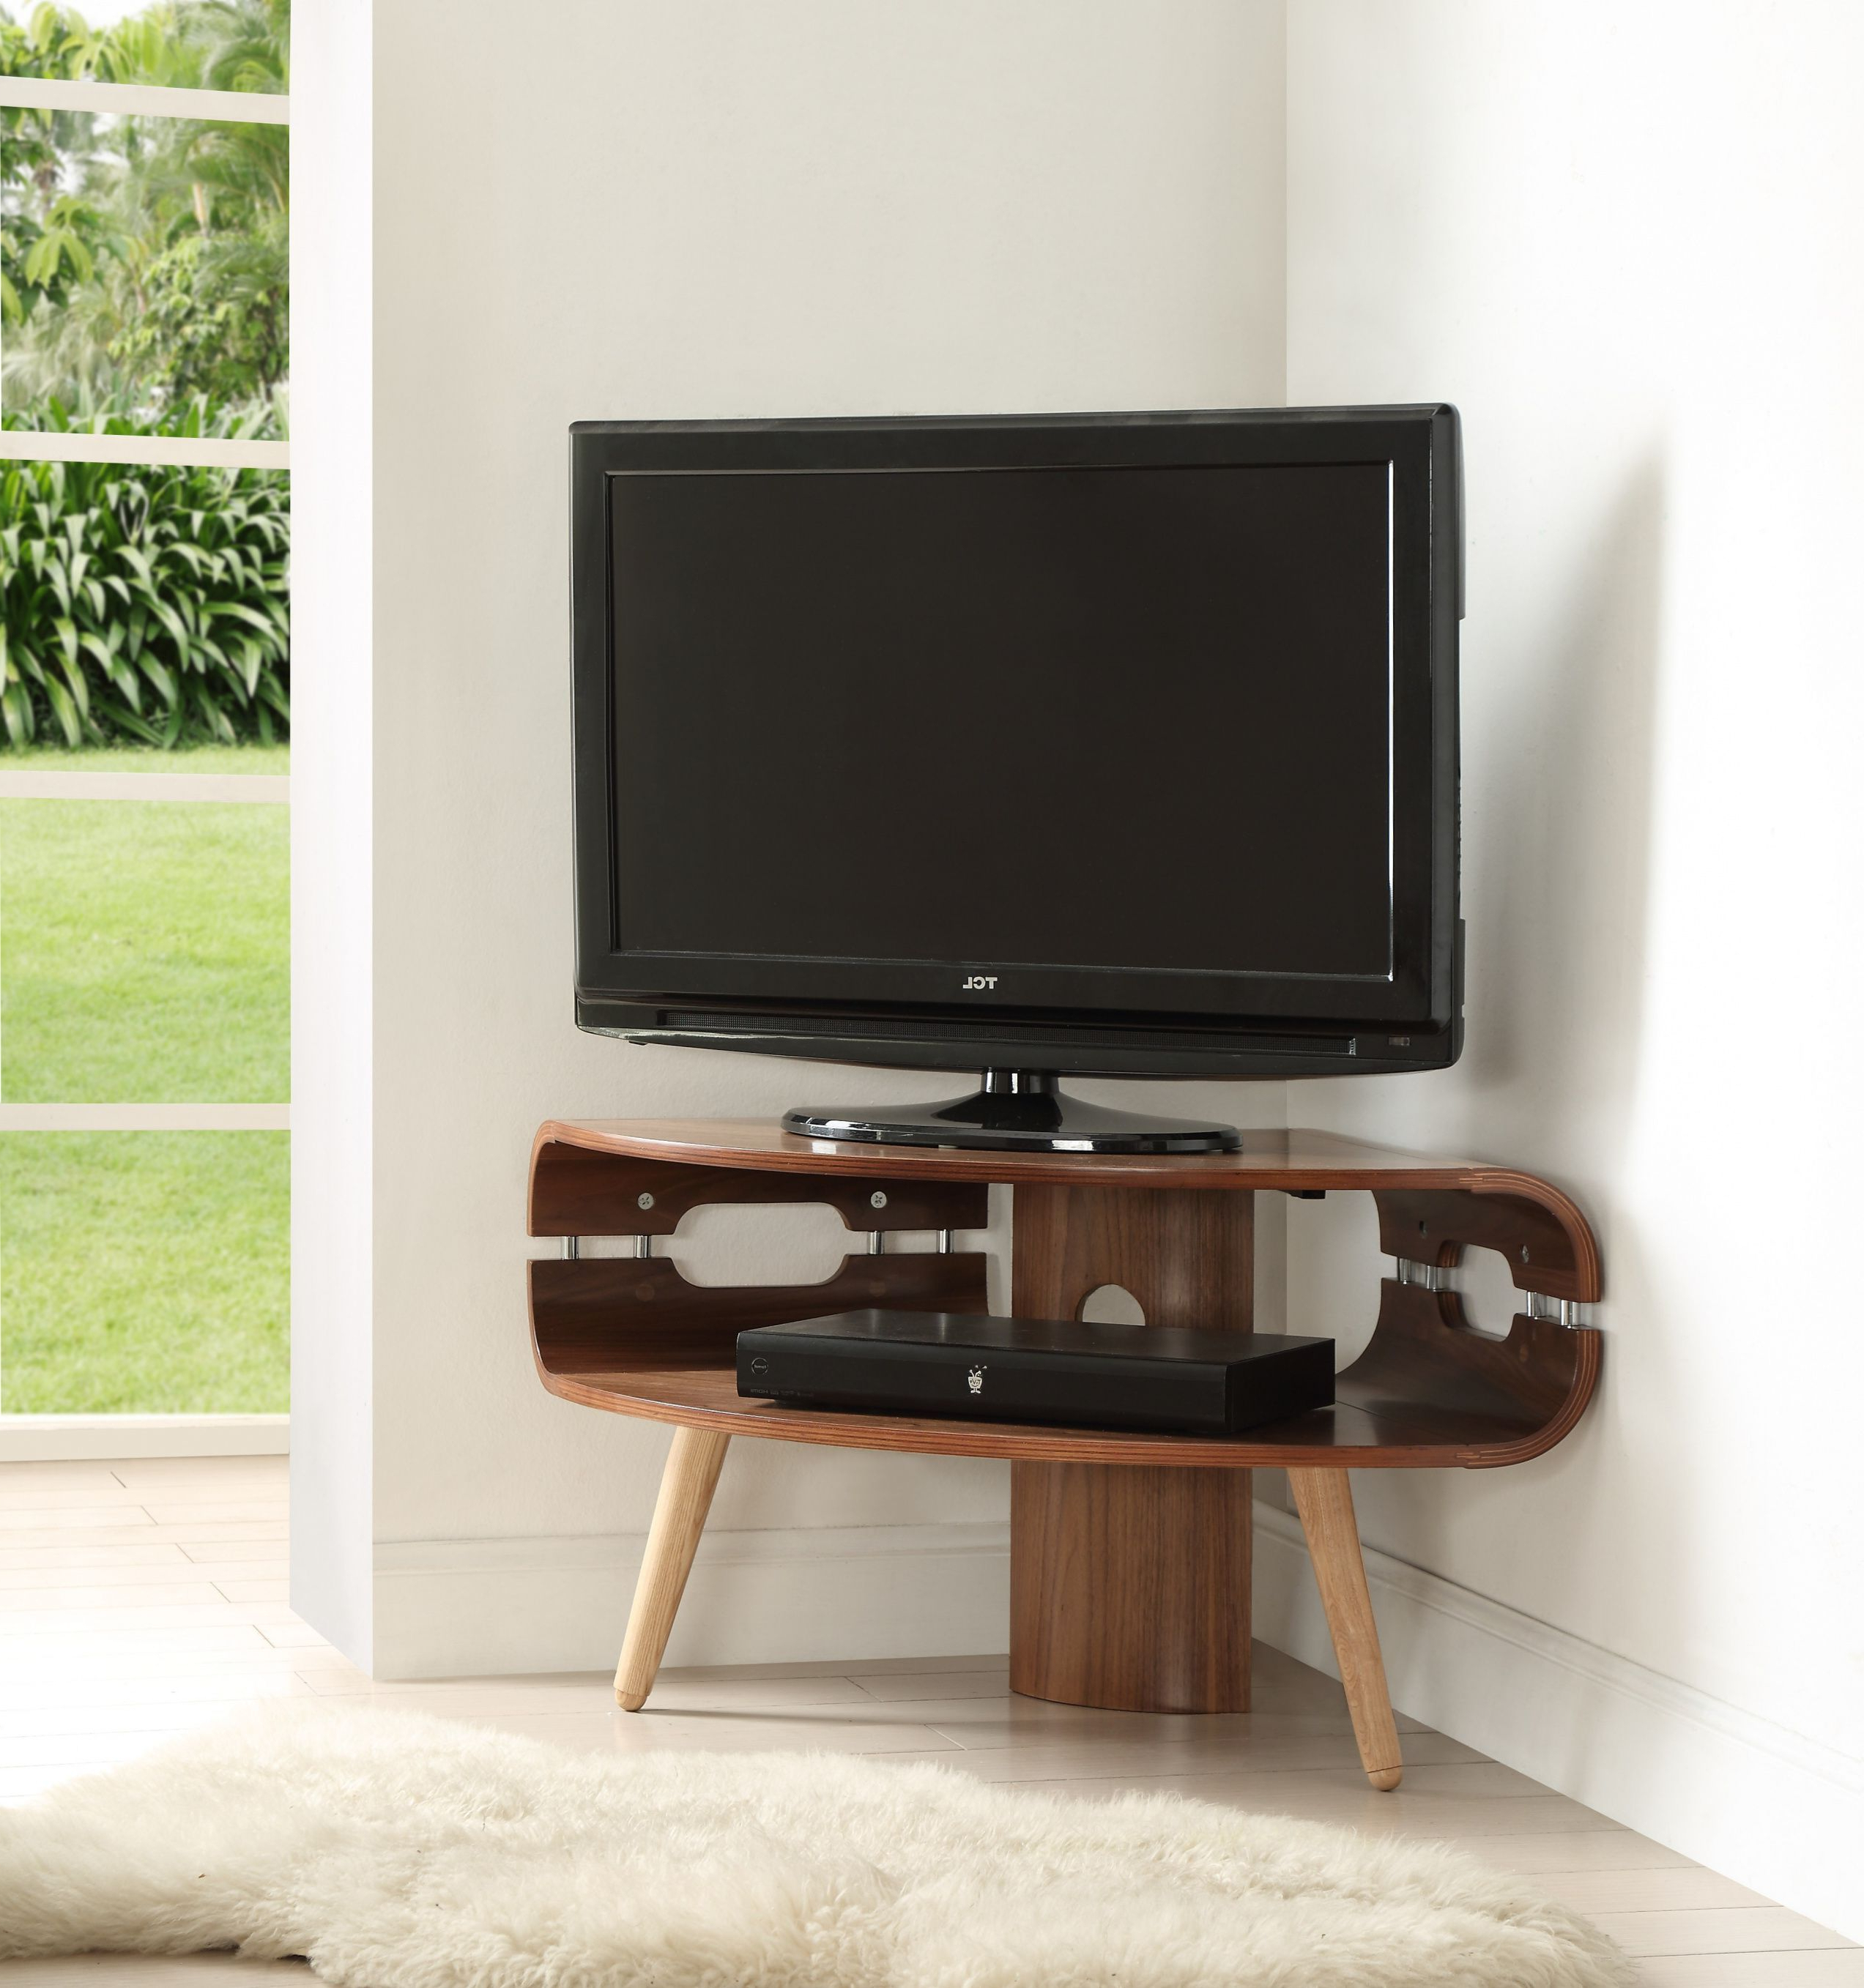 Tvs Within Compact Corner Tv Stands (View 4 of 20)